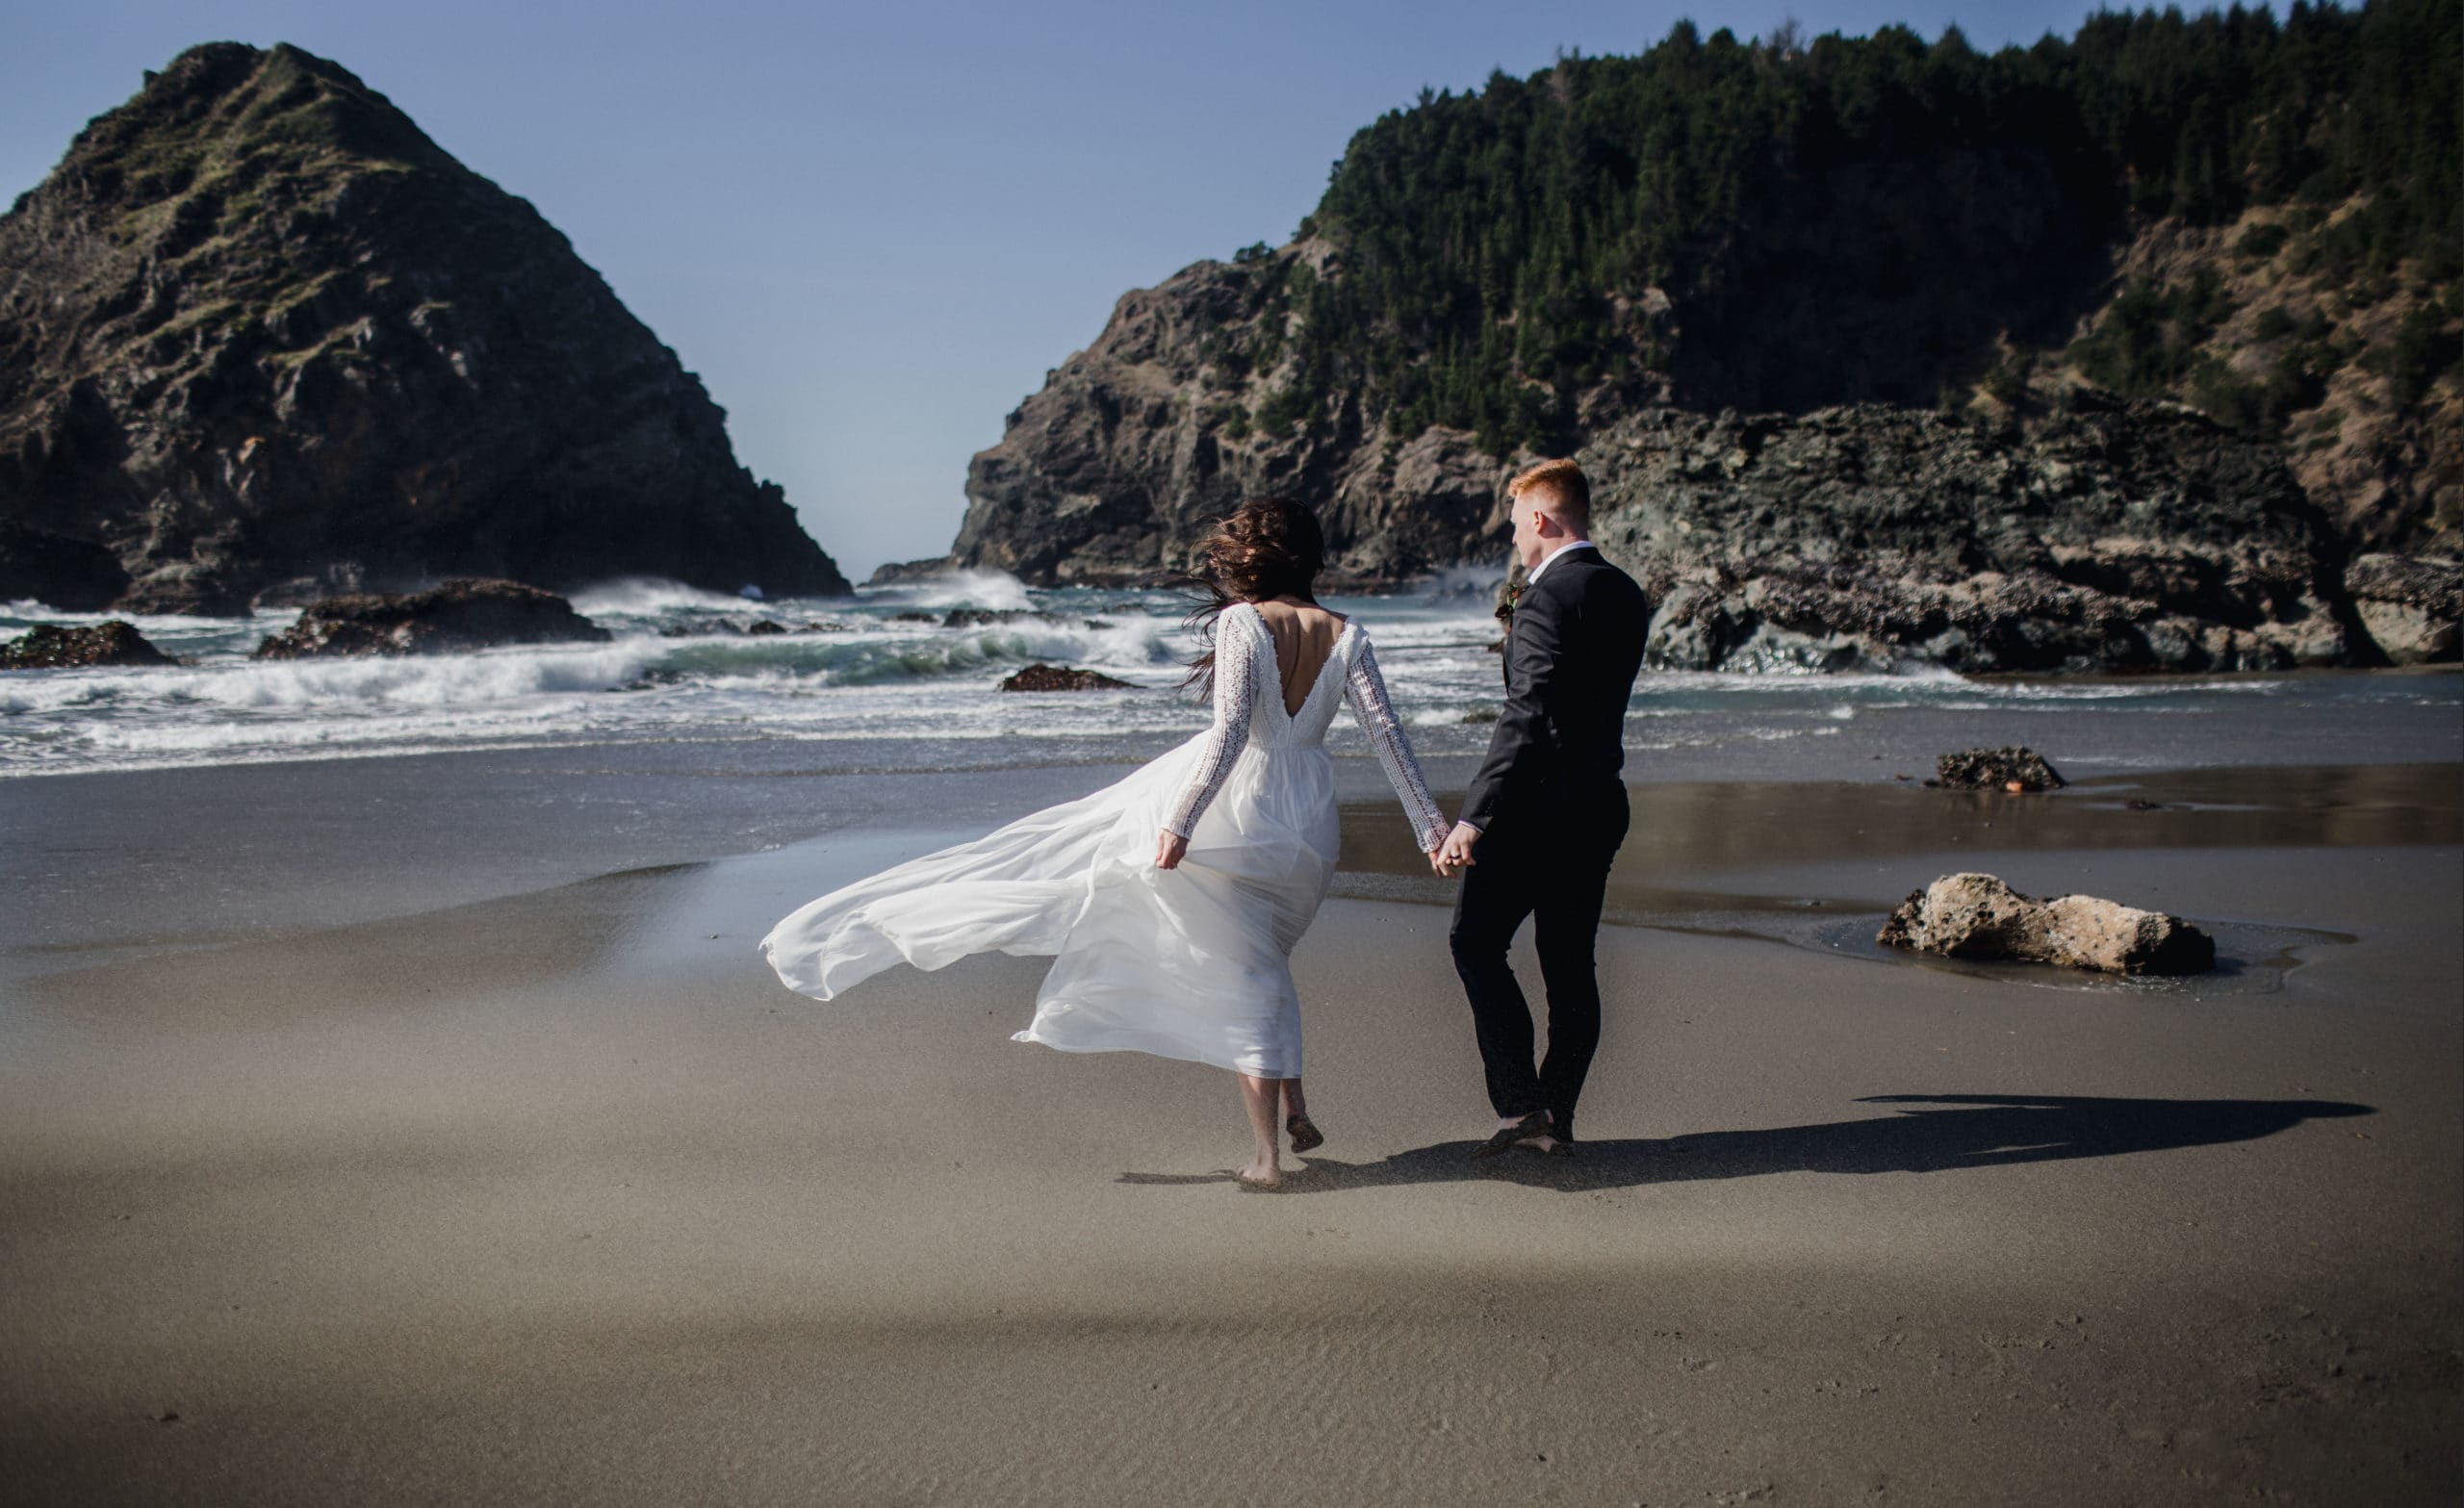 A couple that eloped on the beach in Oregon.